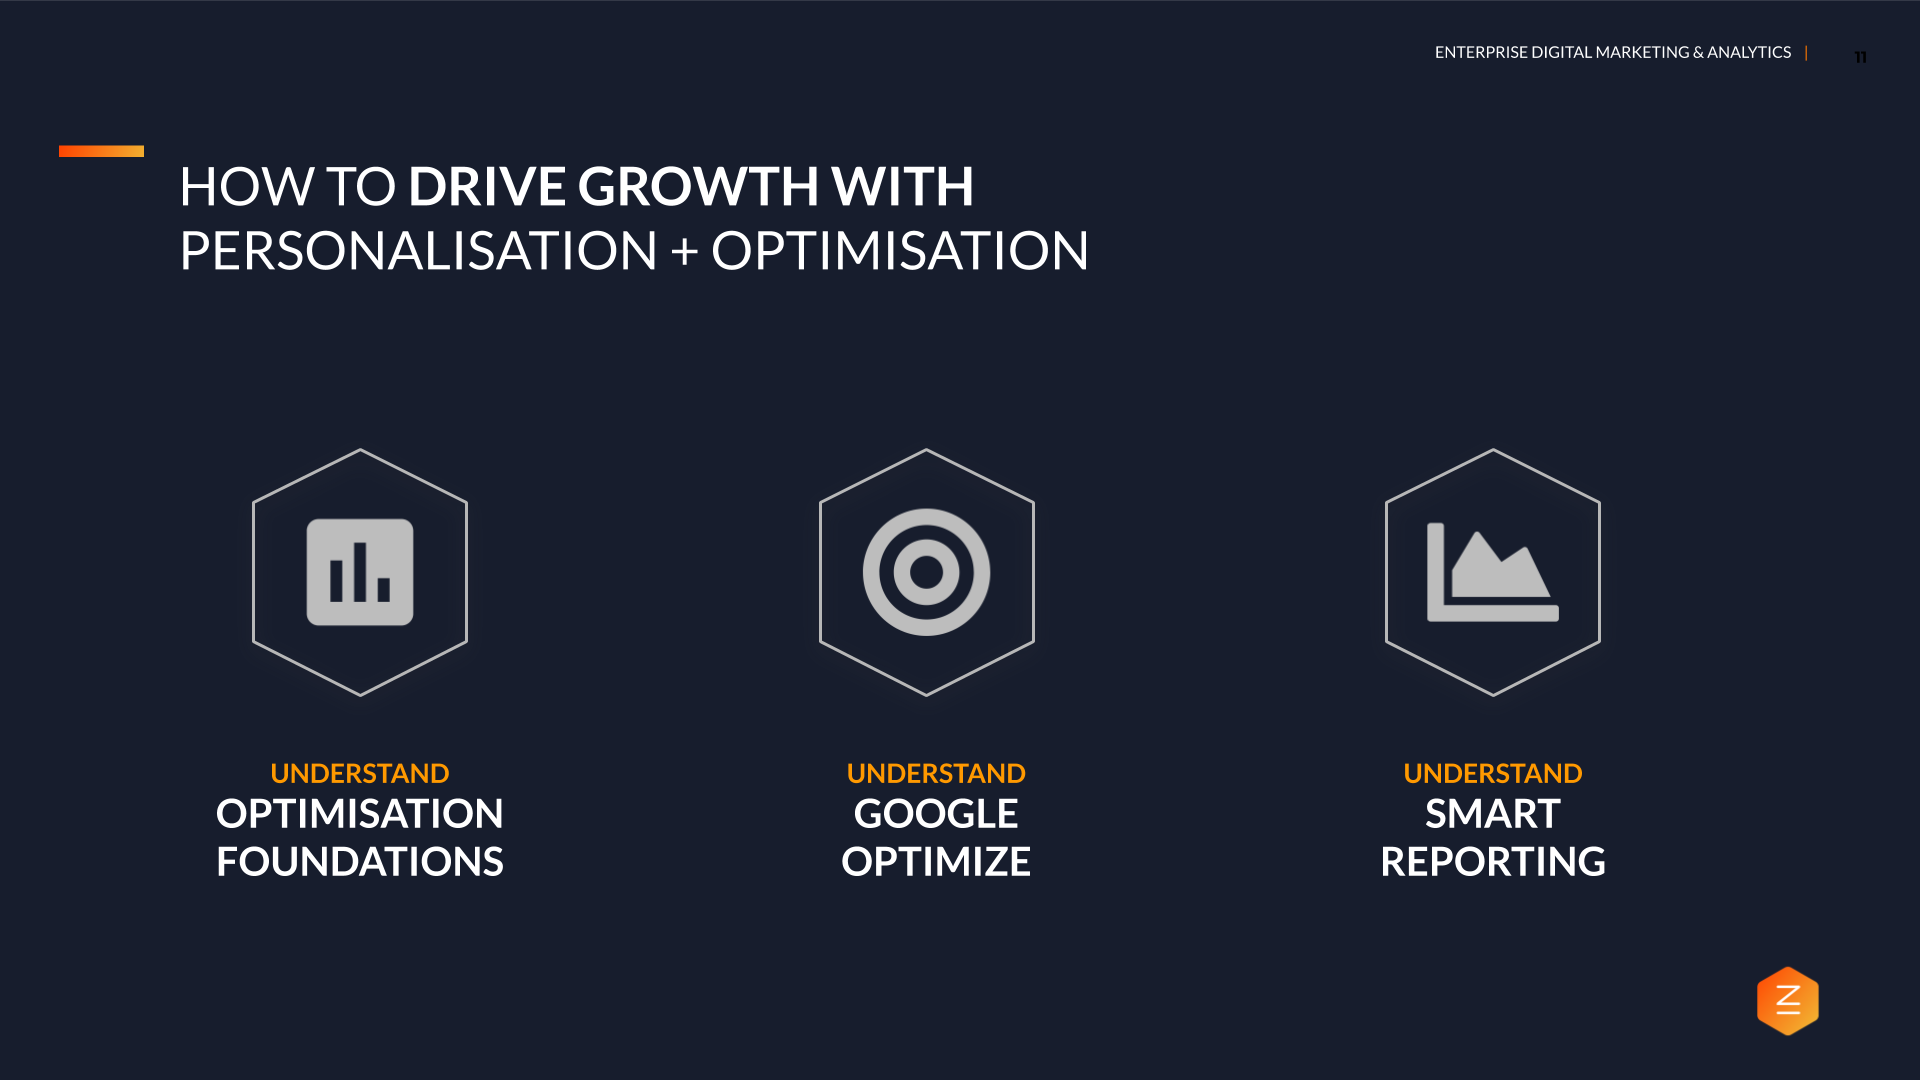 Driving Growth with Personalisation & Optimisation - Google Optimize